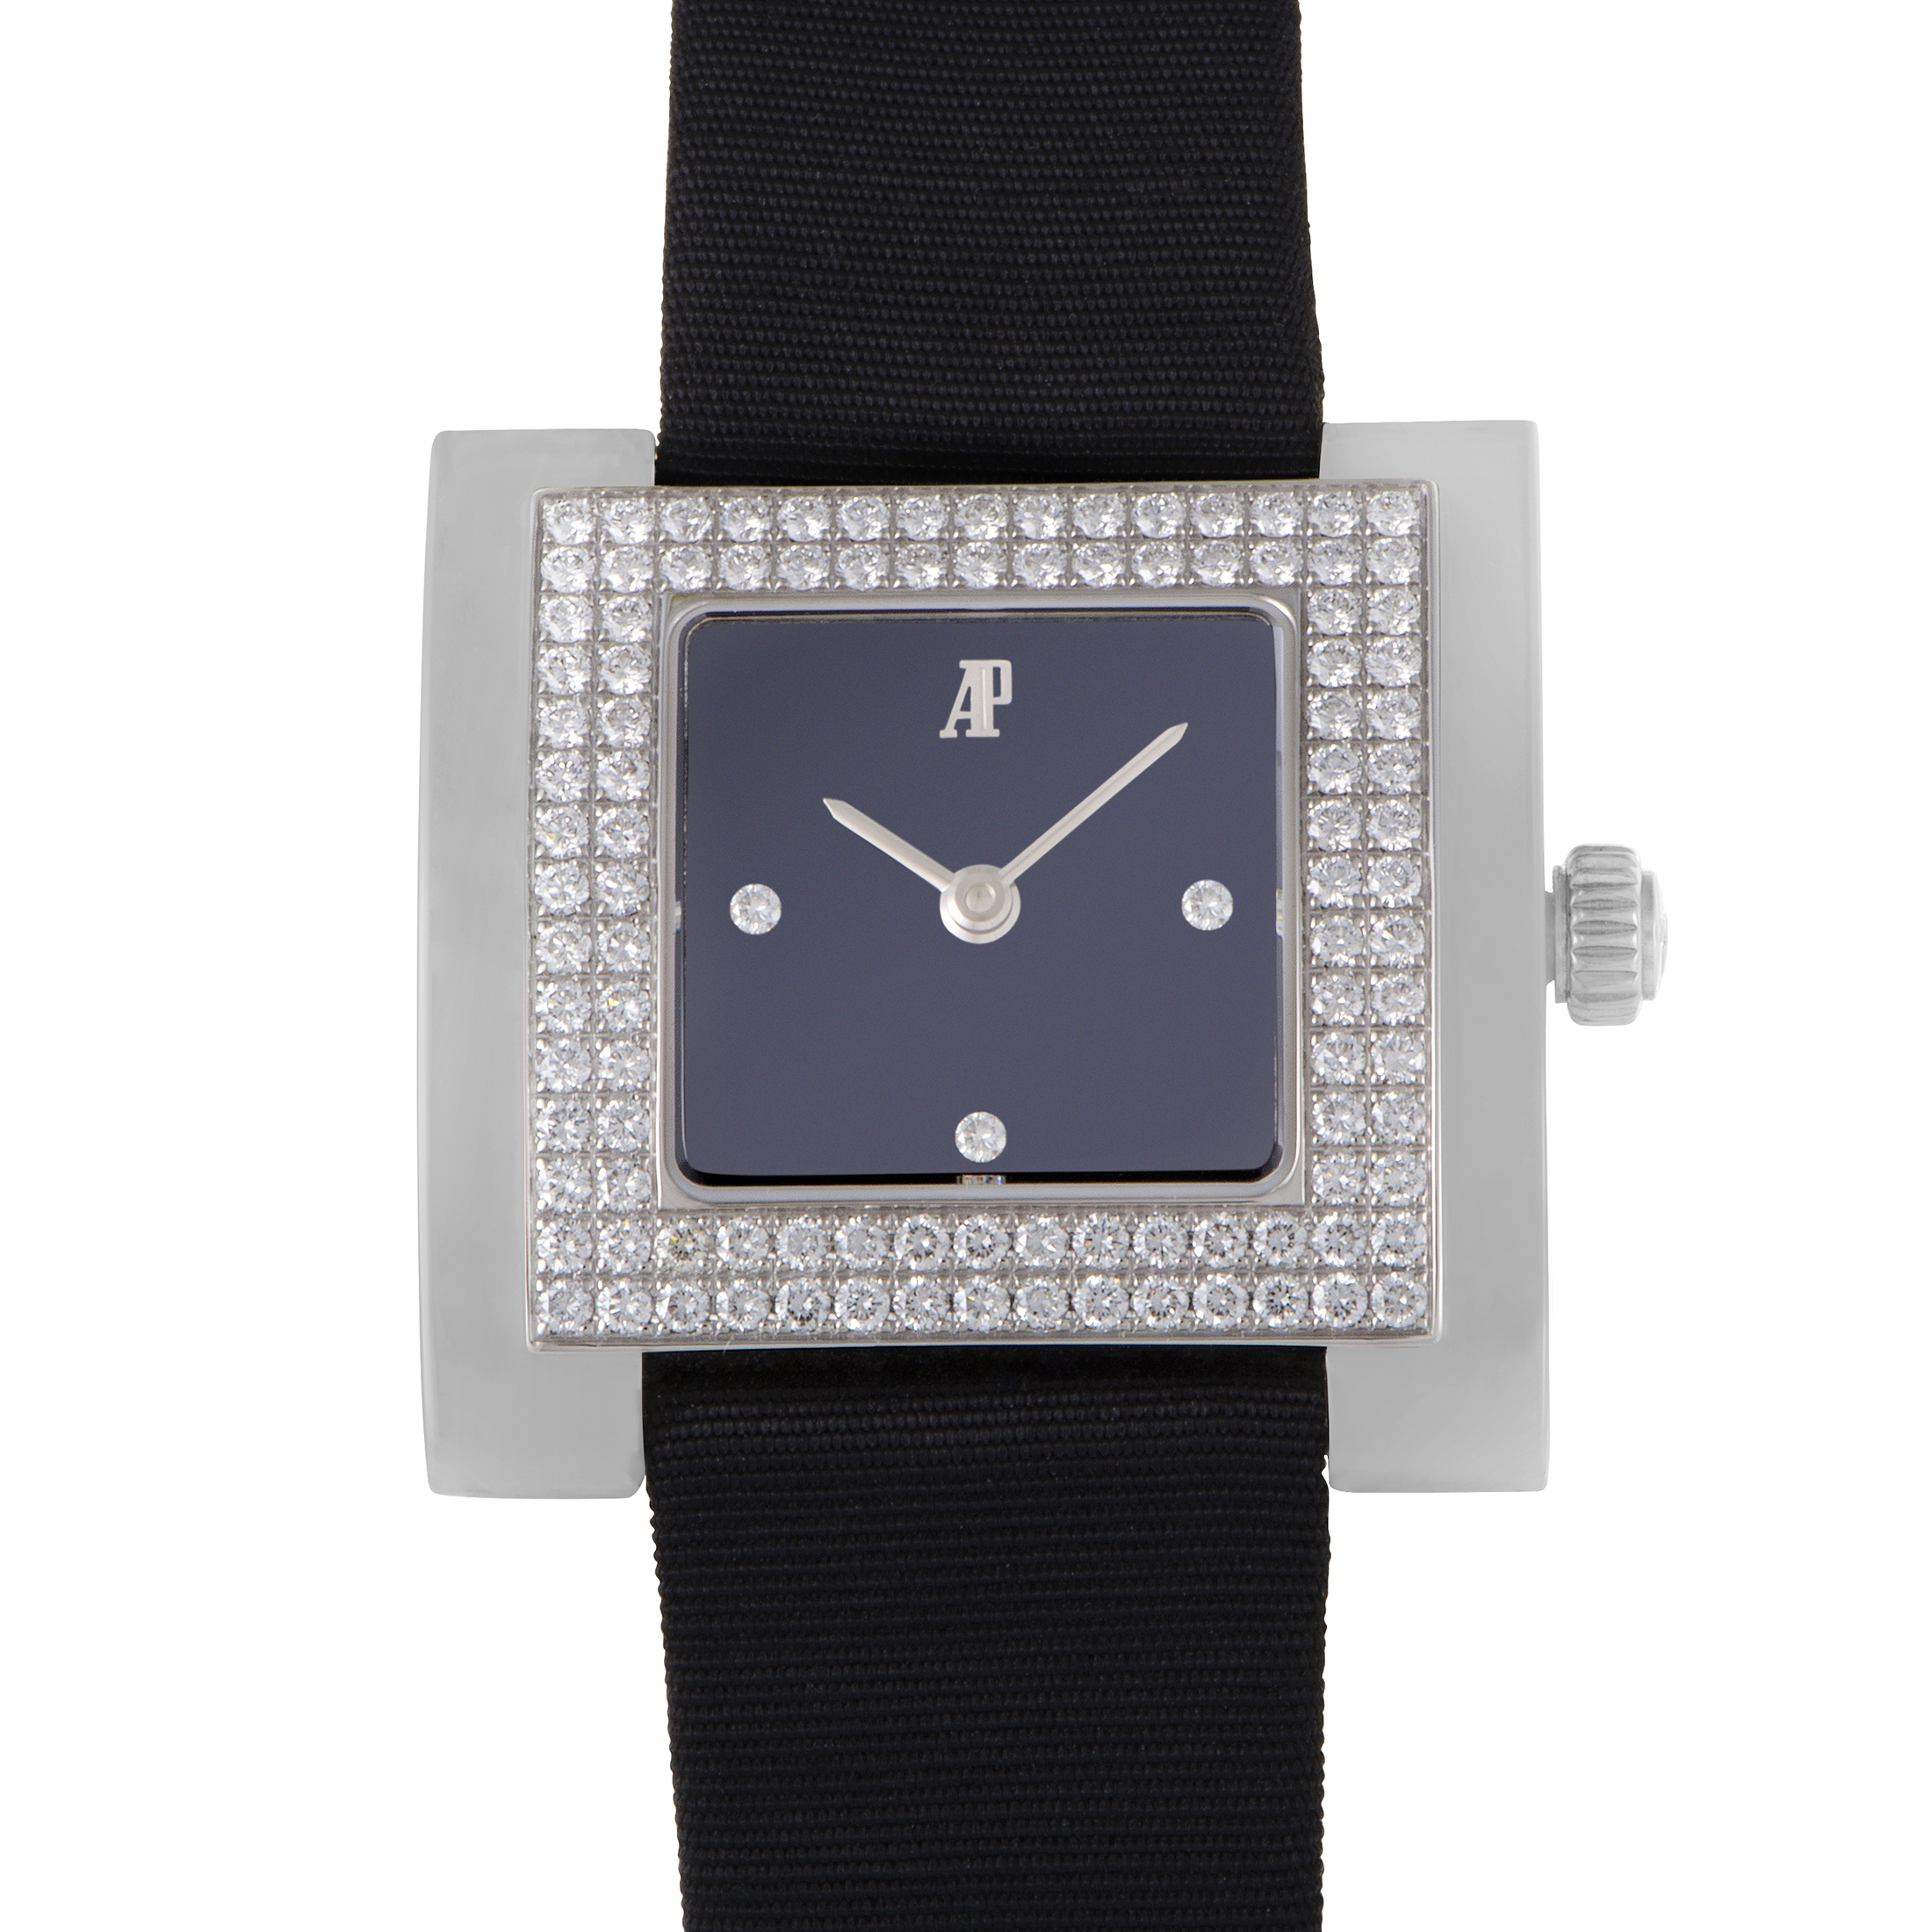 Womens Square Stainless Steel Quartz Watch 67392BC.ZZ.A001LZ.01